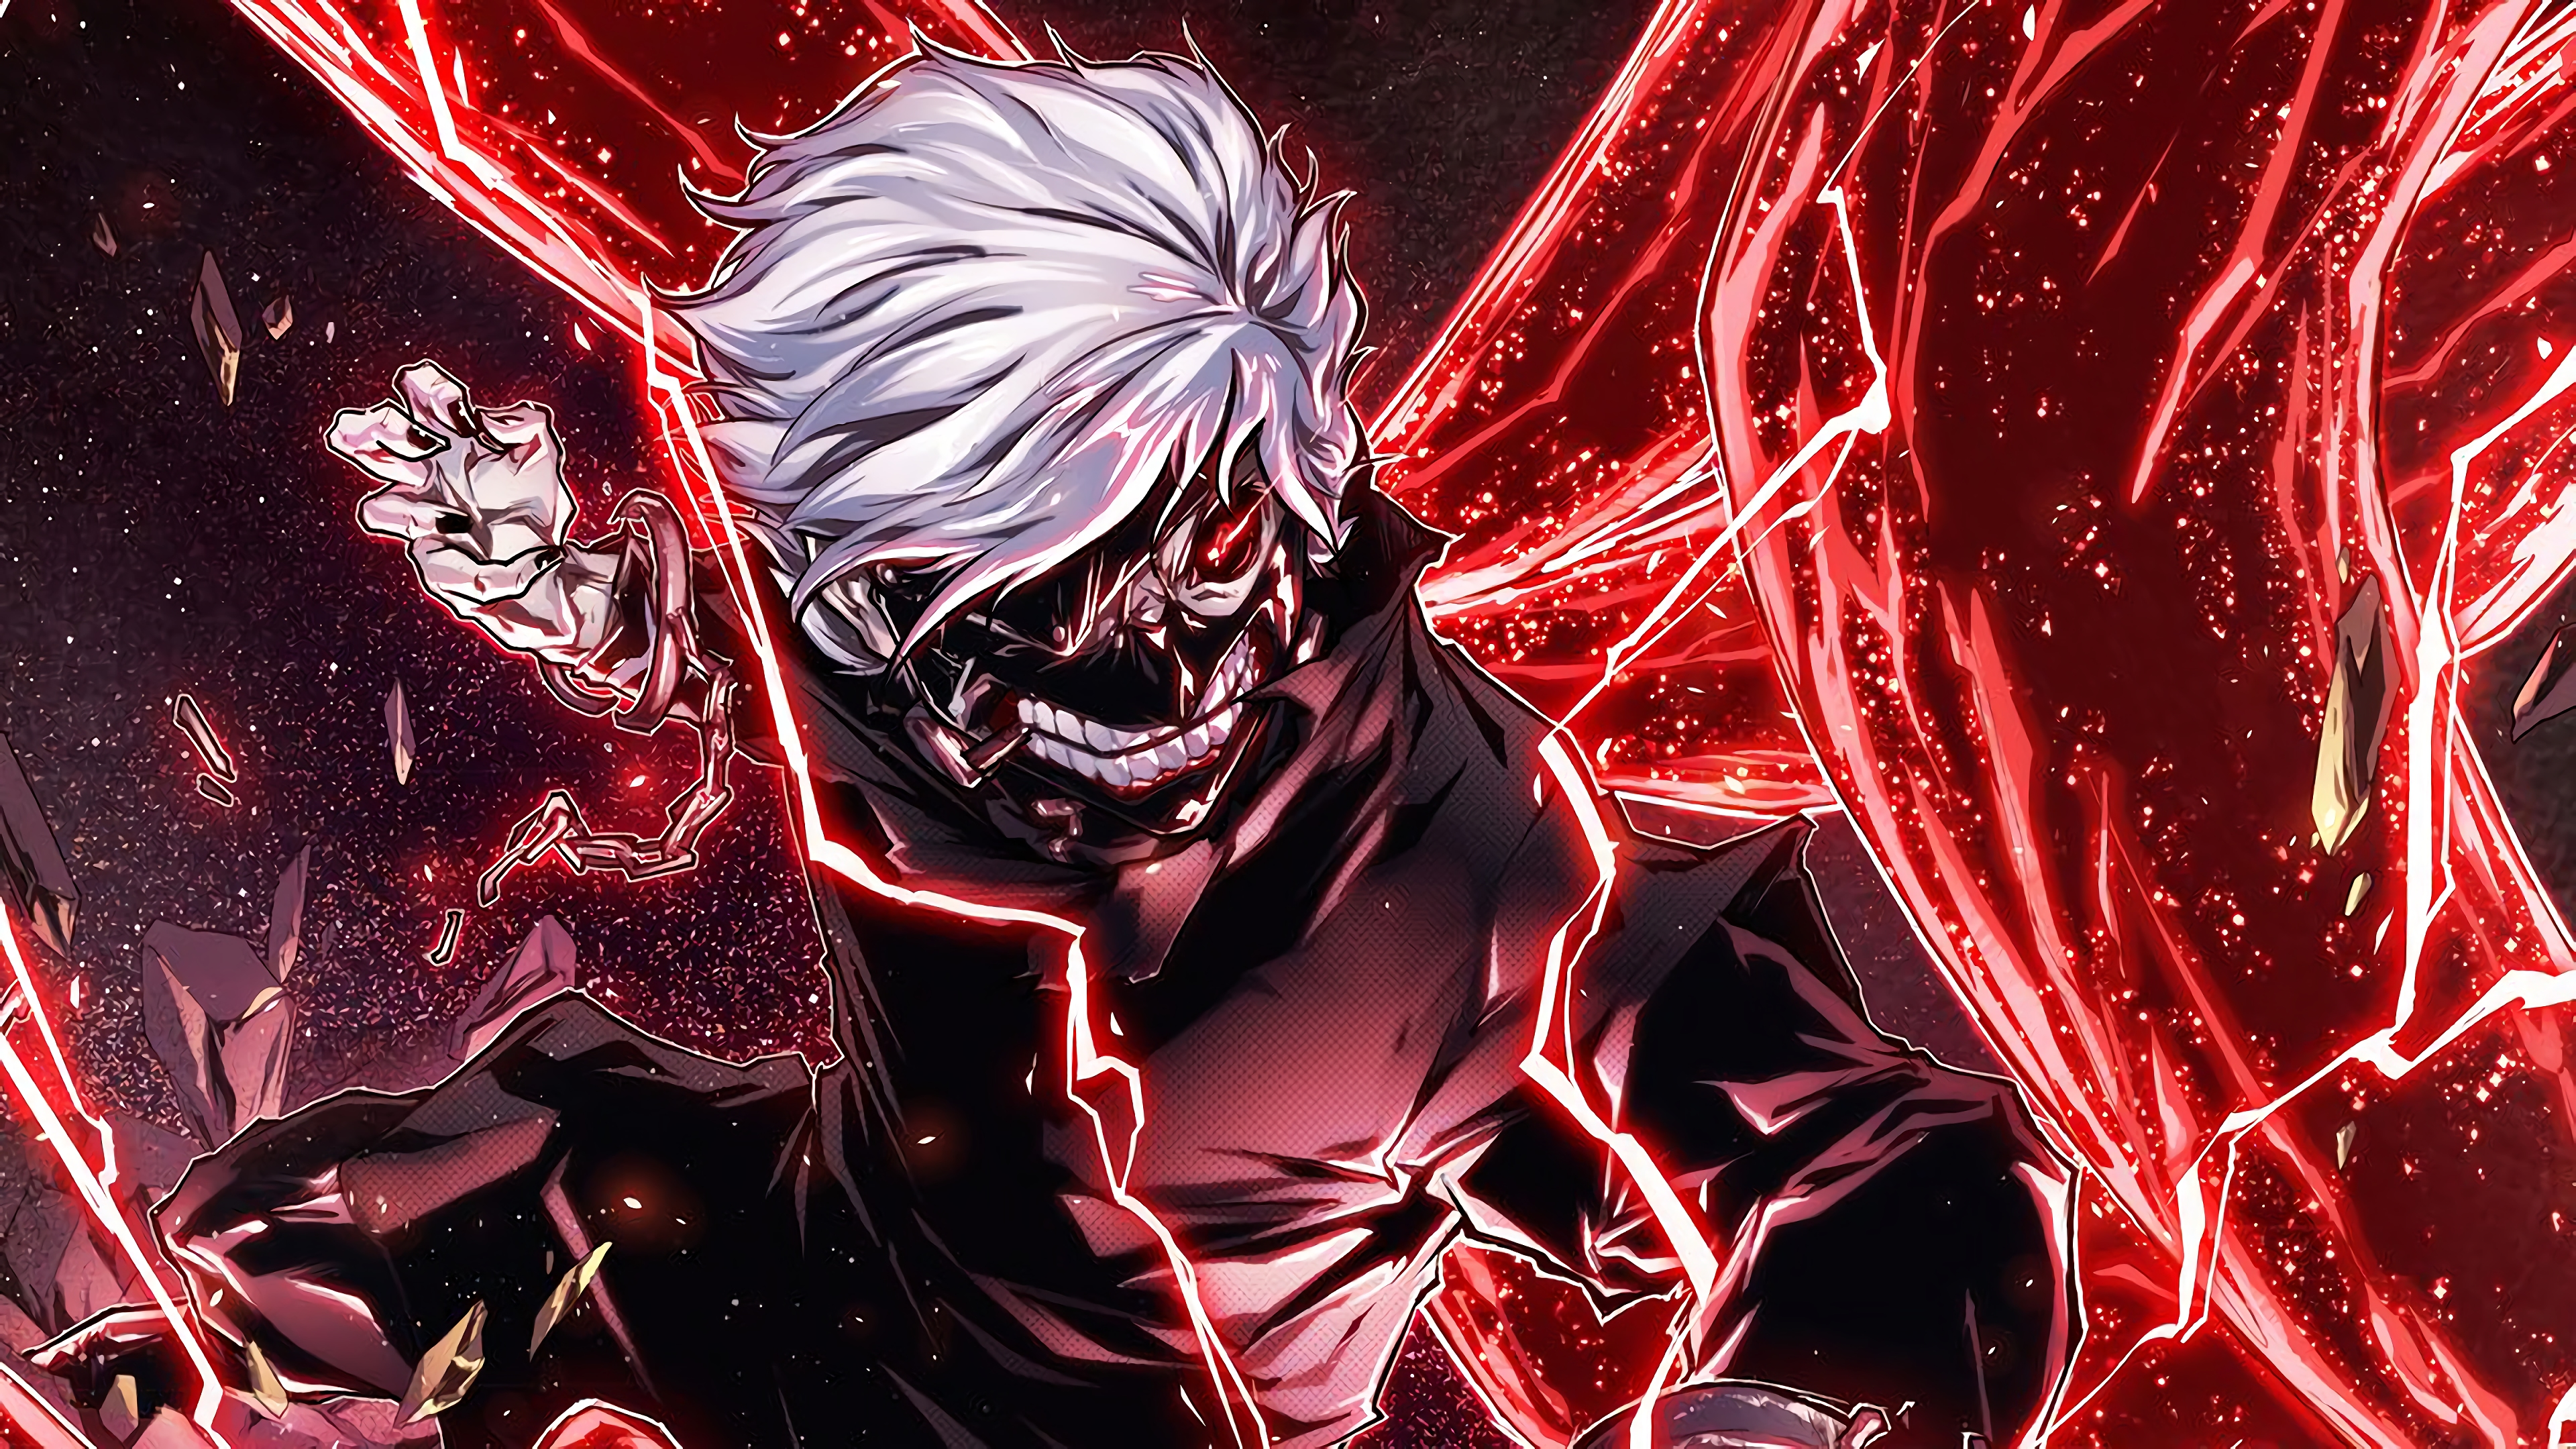 ken kaneki tokyo ghoul 4k 1548527781 - Ken Kaneki Tokyo Ghoul 4k - tokyo ghoul wallpapers, ken kaneki wallpapers, hd-wallpapers, digital art wallpapers, deviantart wallpapers, artwork wallpapers, artist wallpapers, anime wallpapers, 4k-wallpapers